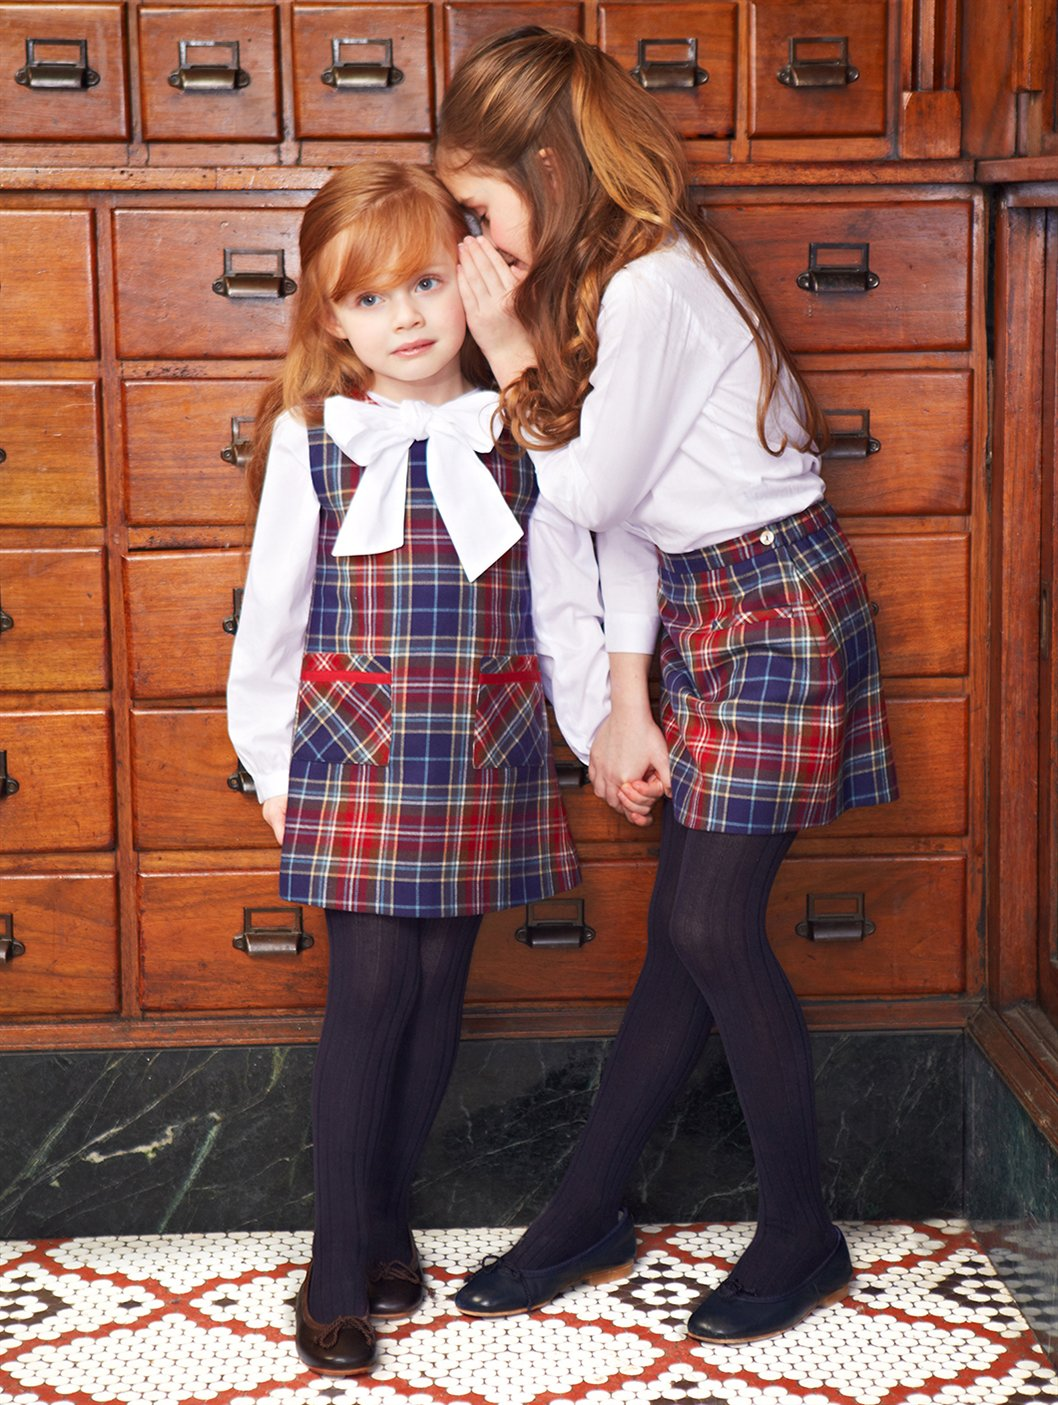 Oscar de la renta back to school 2014 fannice kids fashion for Oscar de la renta childhood